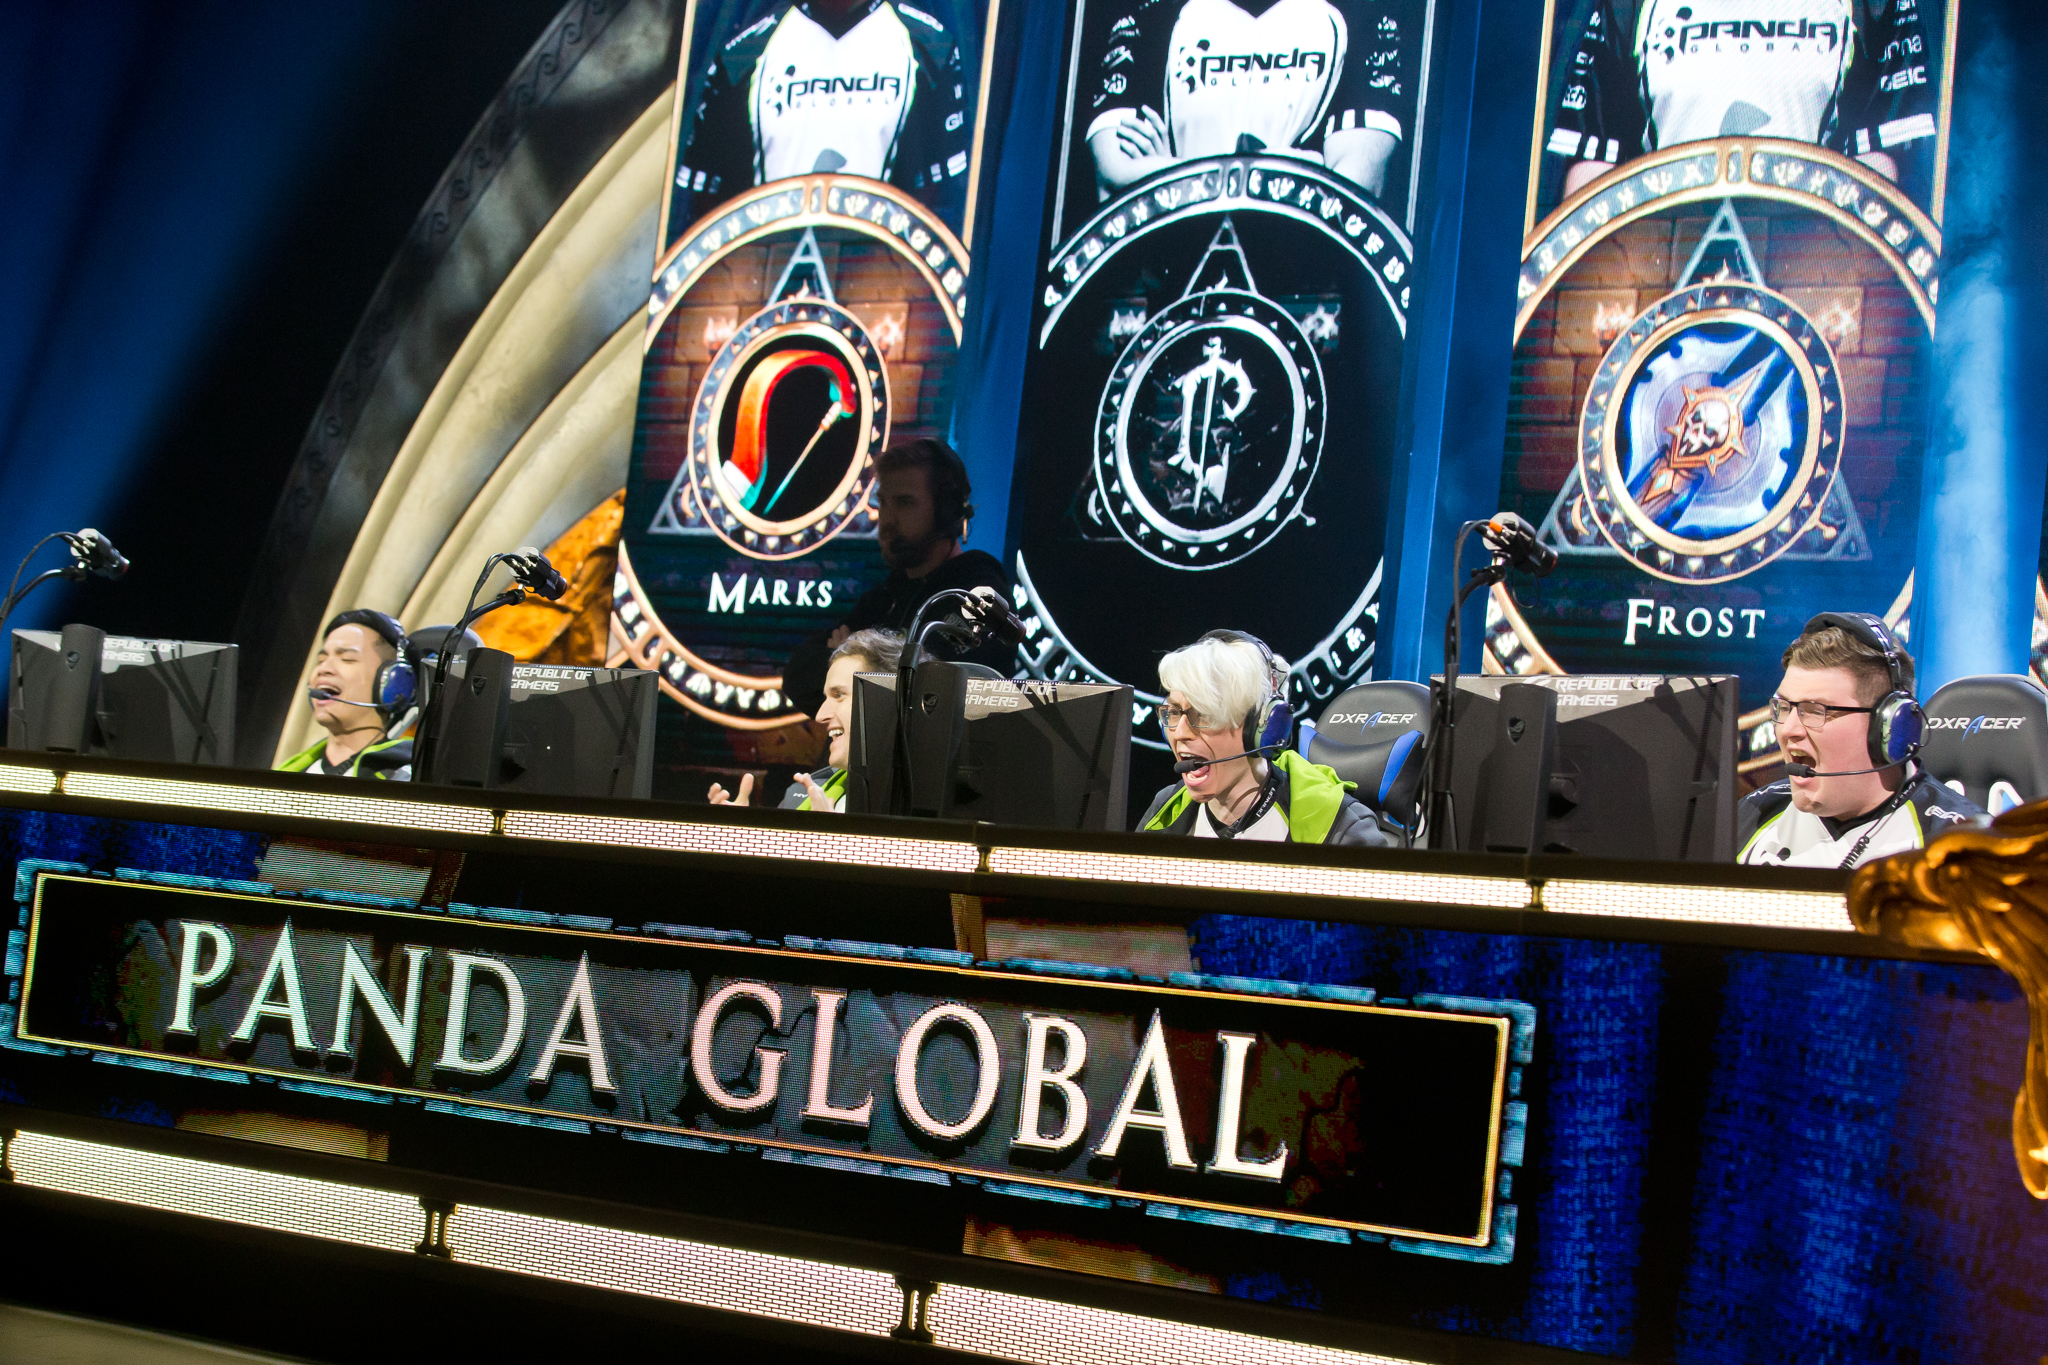 Panda Global at BlizzCon 2017